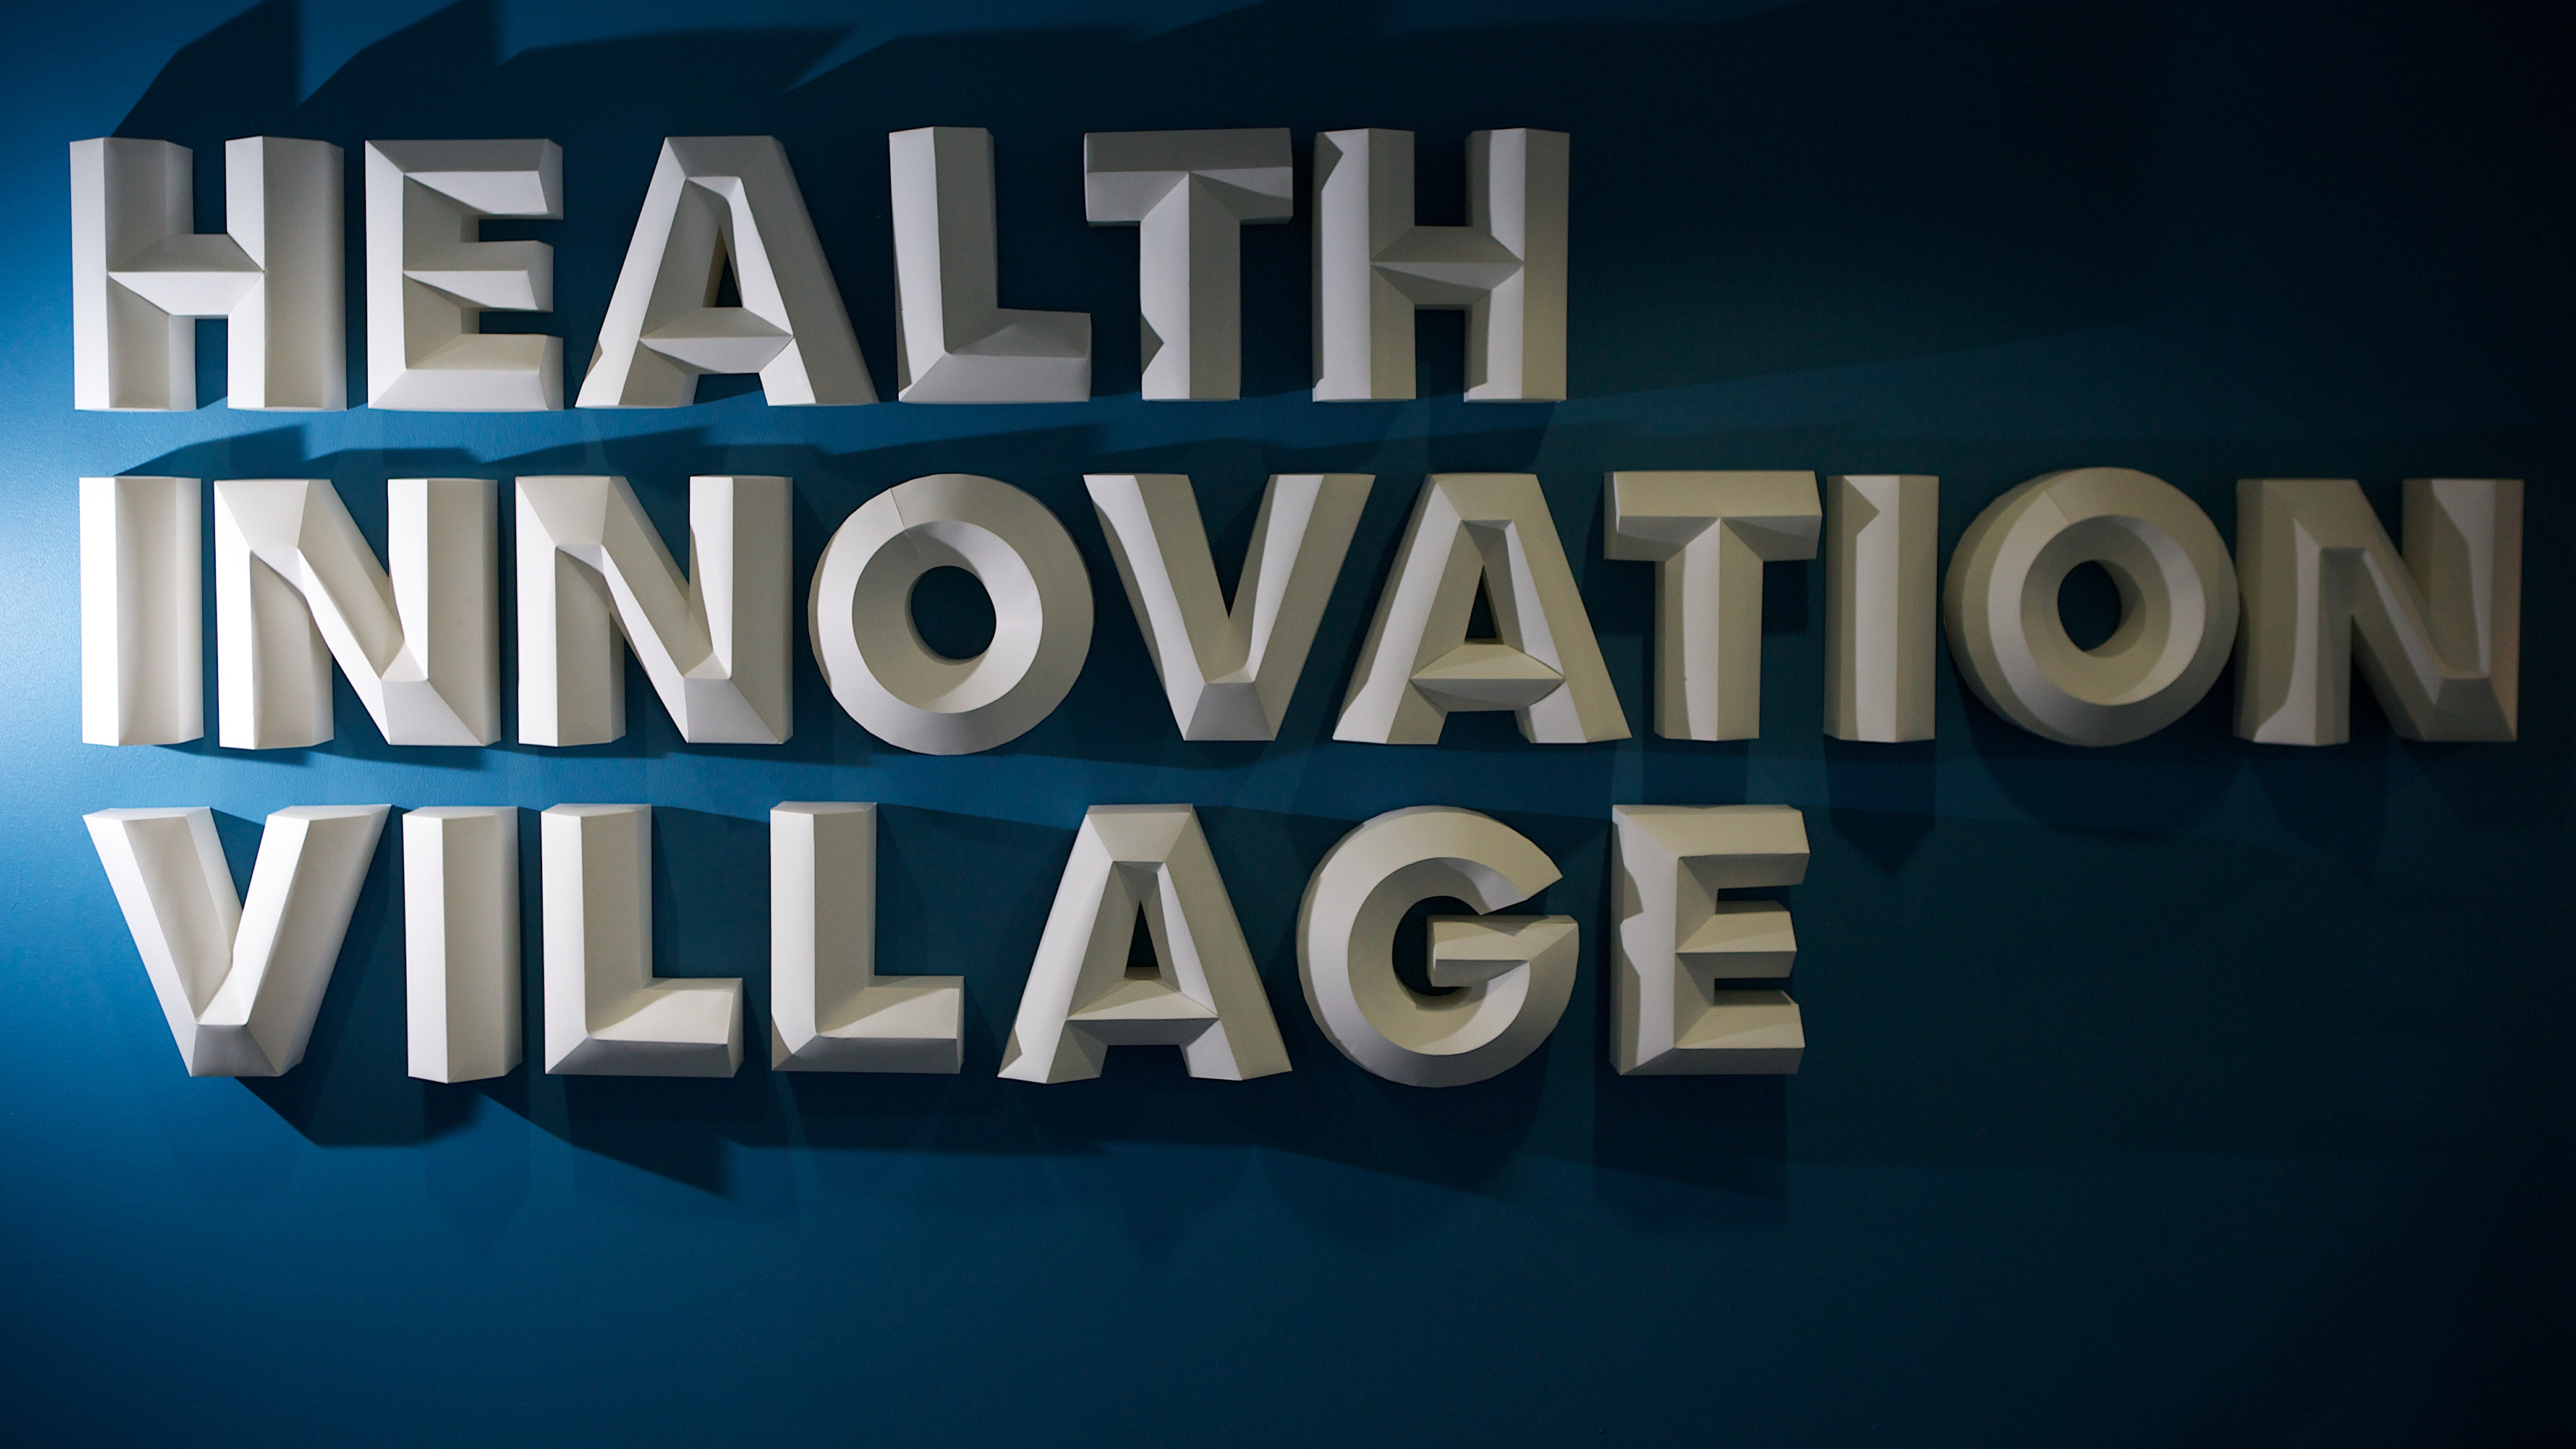 GE Healthcare launches startup campus Health Innovation Village to